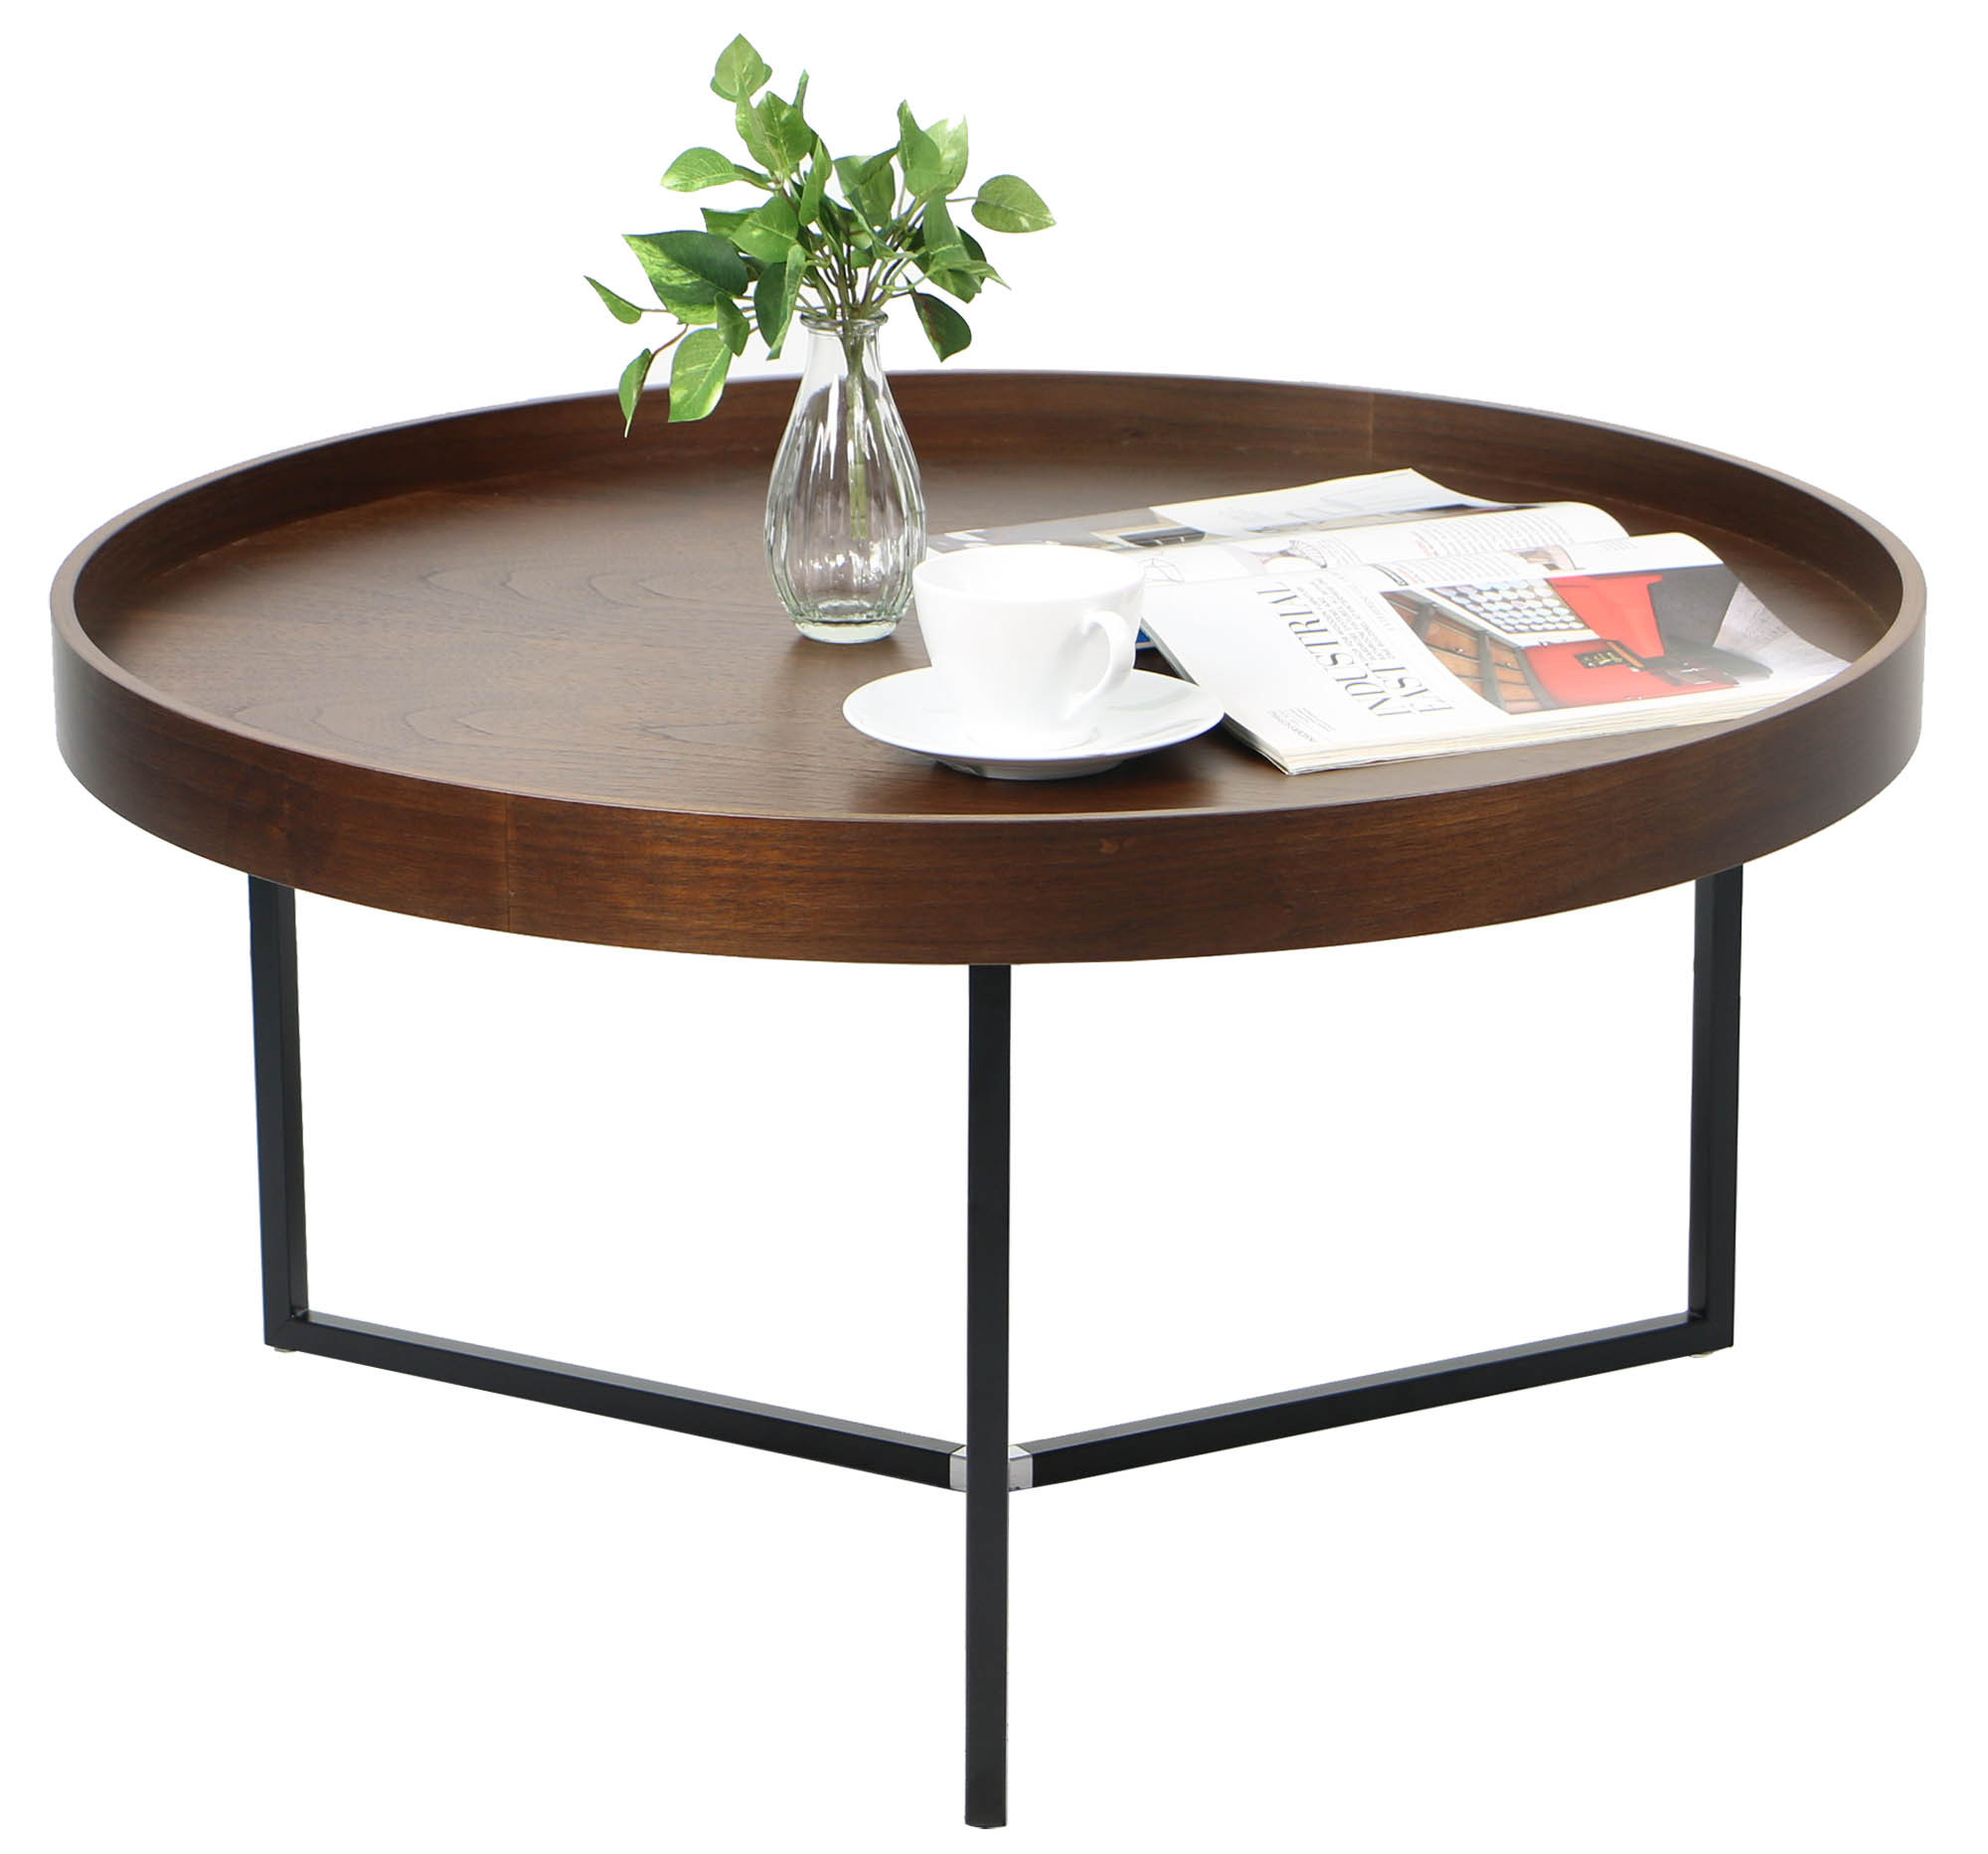 barrie walnut round tray table coffee tables living room furniture furniture home d cor. Black Bedroom Furniture Sets. Home Design Ideas